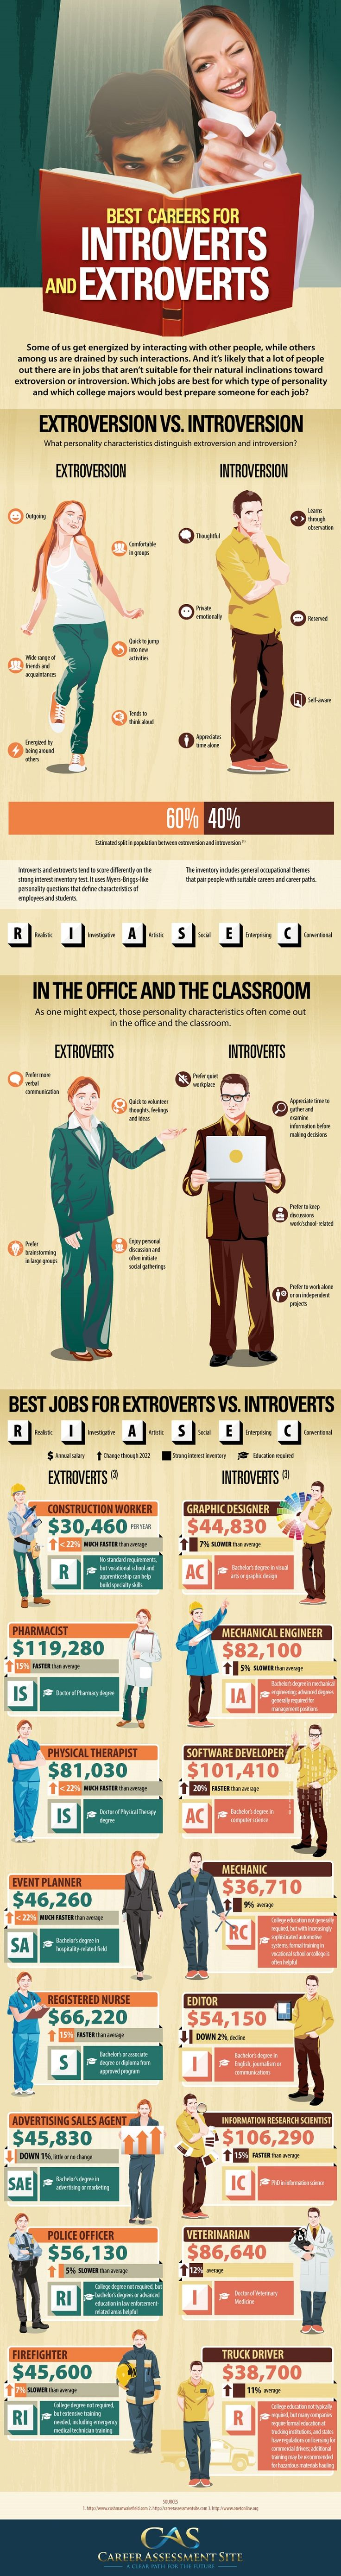 Some of us get energized by interacting with other people, while others among us are drained by such interactions. Whether you are an extrovert or an introvert, this #infographic will help you see which #jobs fit the best for you #personality type.